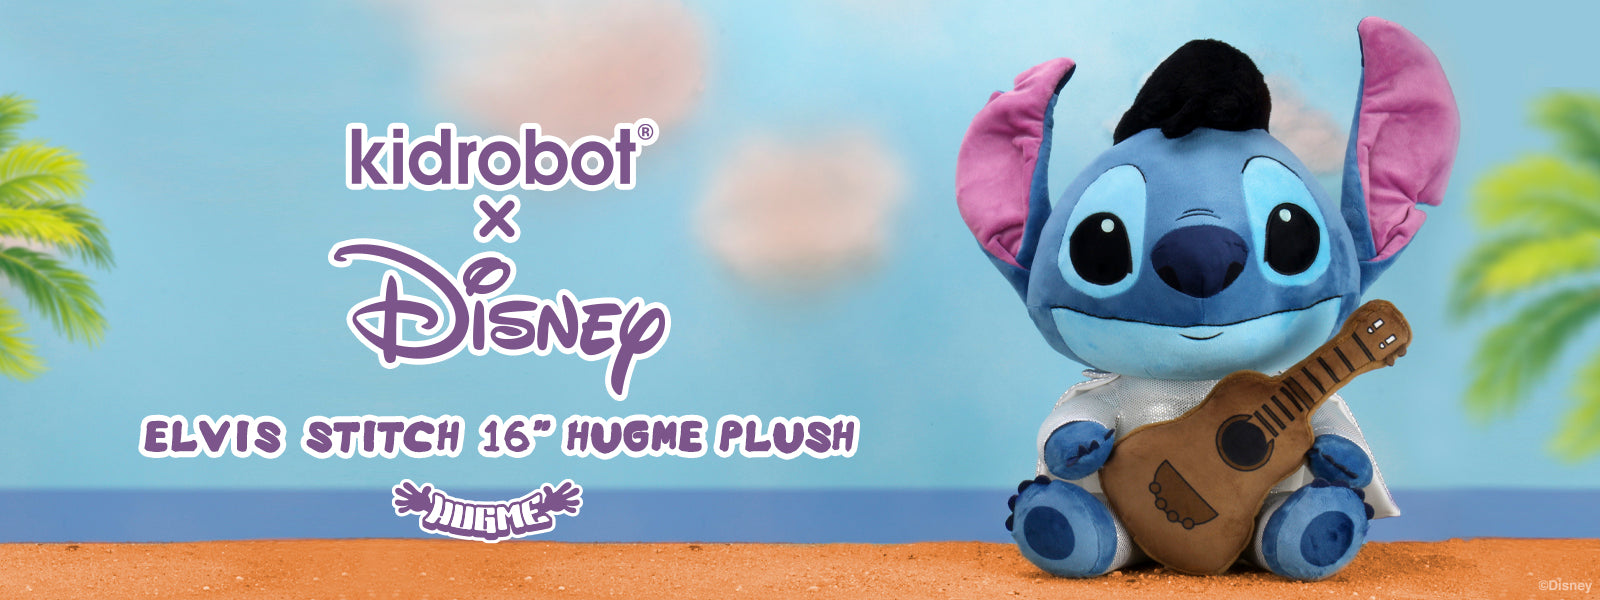 Kidrobot x Disney Elvis Stitch HugMe Plush